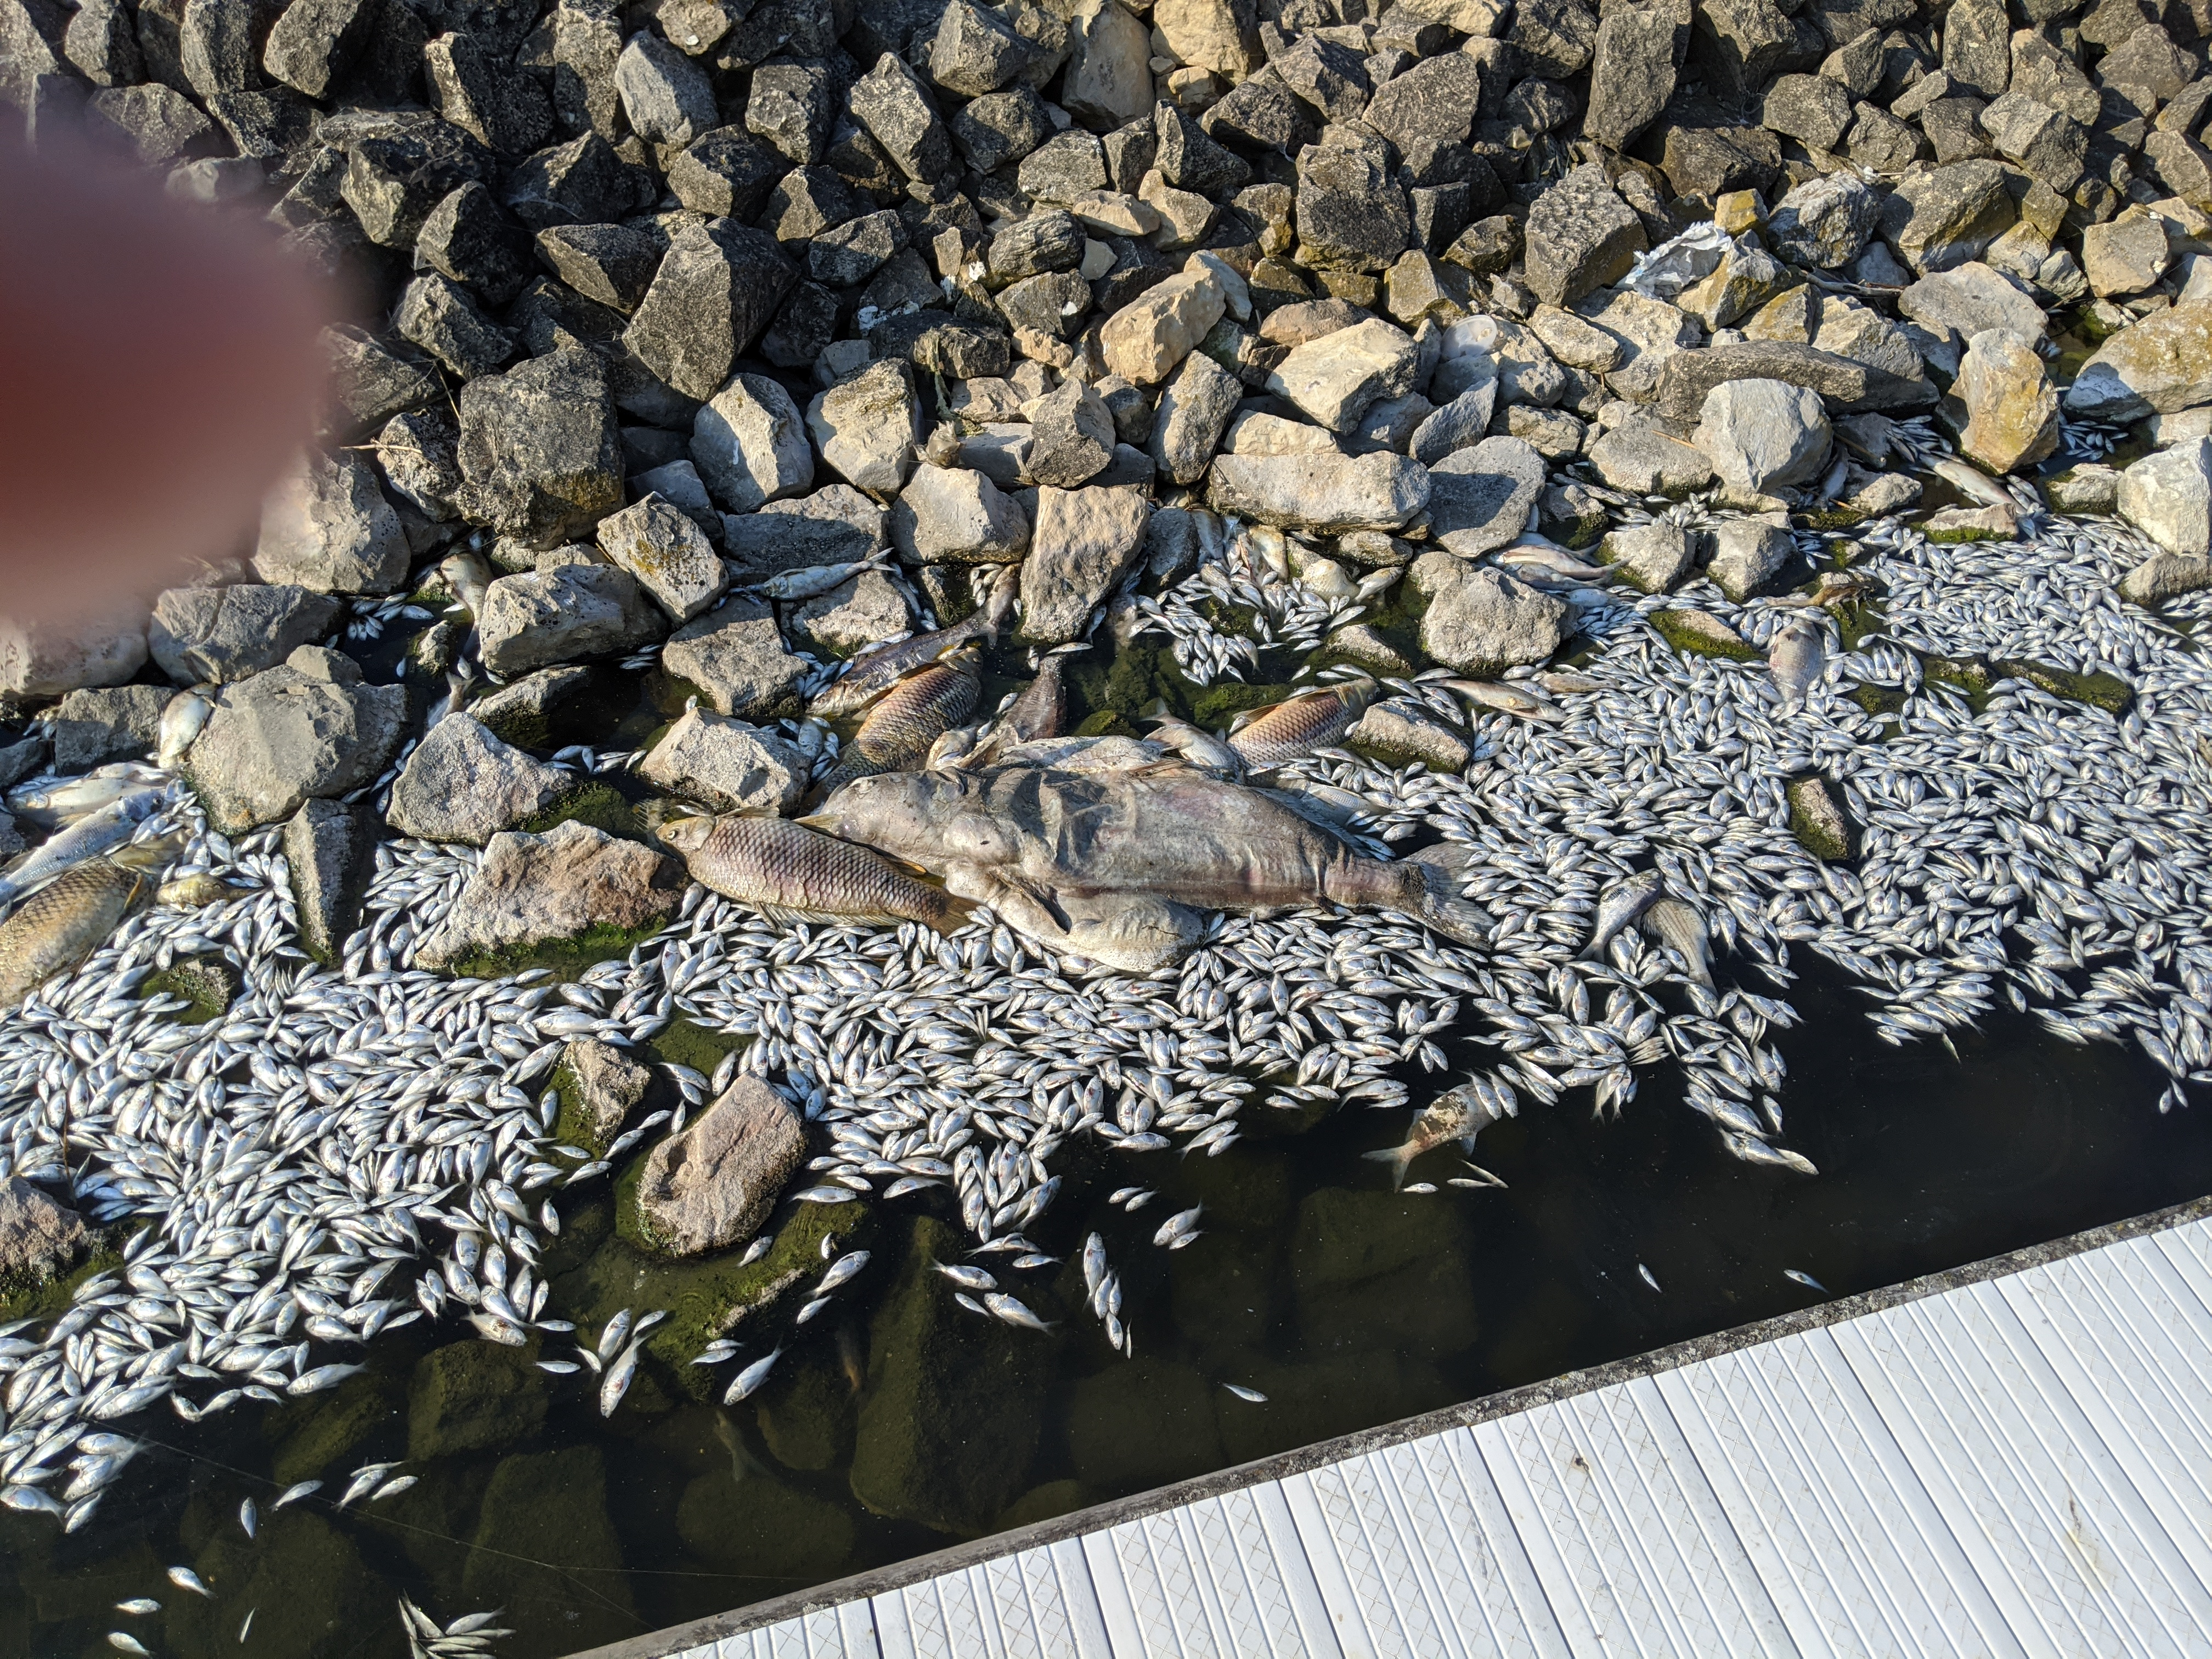 The boat launch area of LaSalle Lake showed the worst of the fish kill Wednesday morning, but a survey showed the rest of the lake was not as impacted. Credit: Dale Bowman